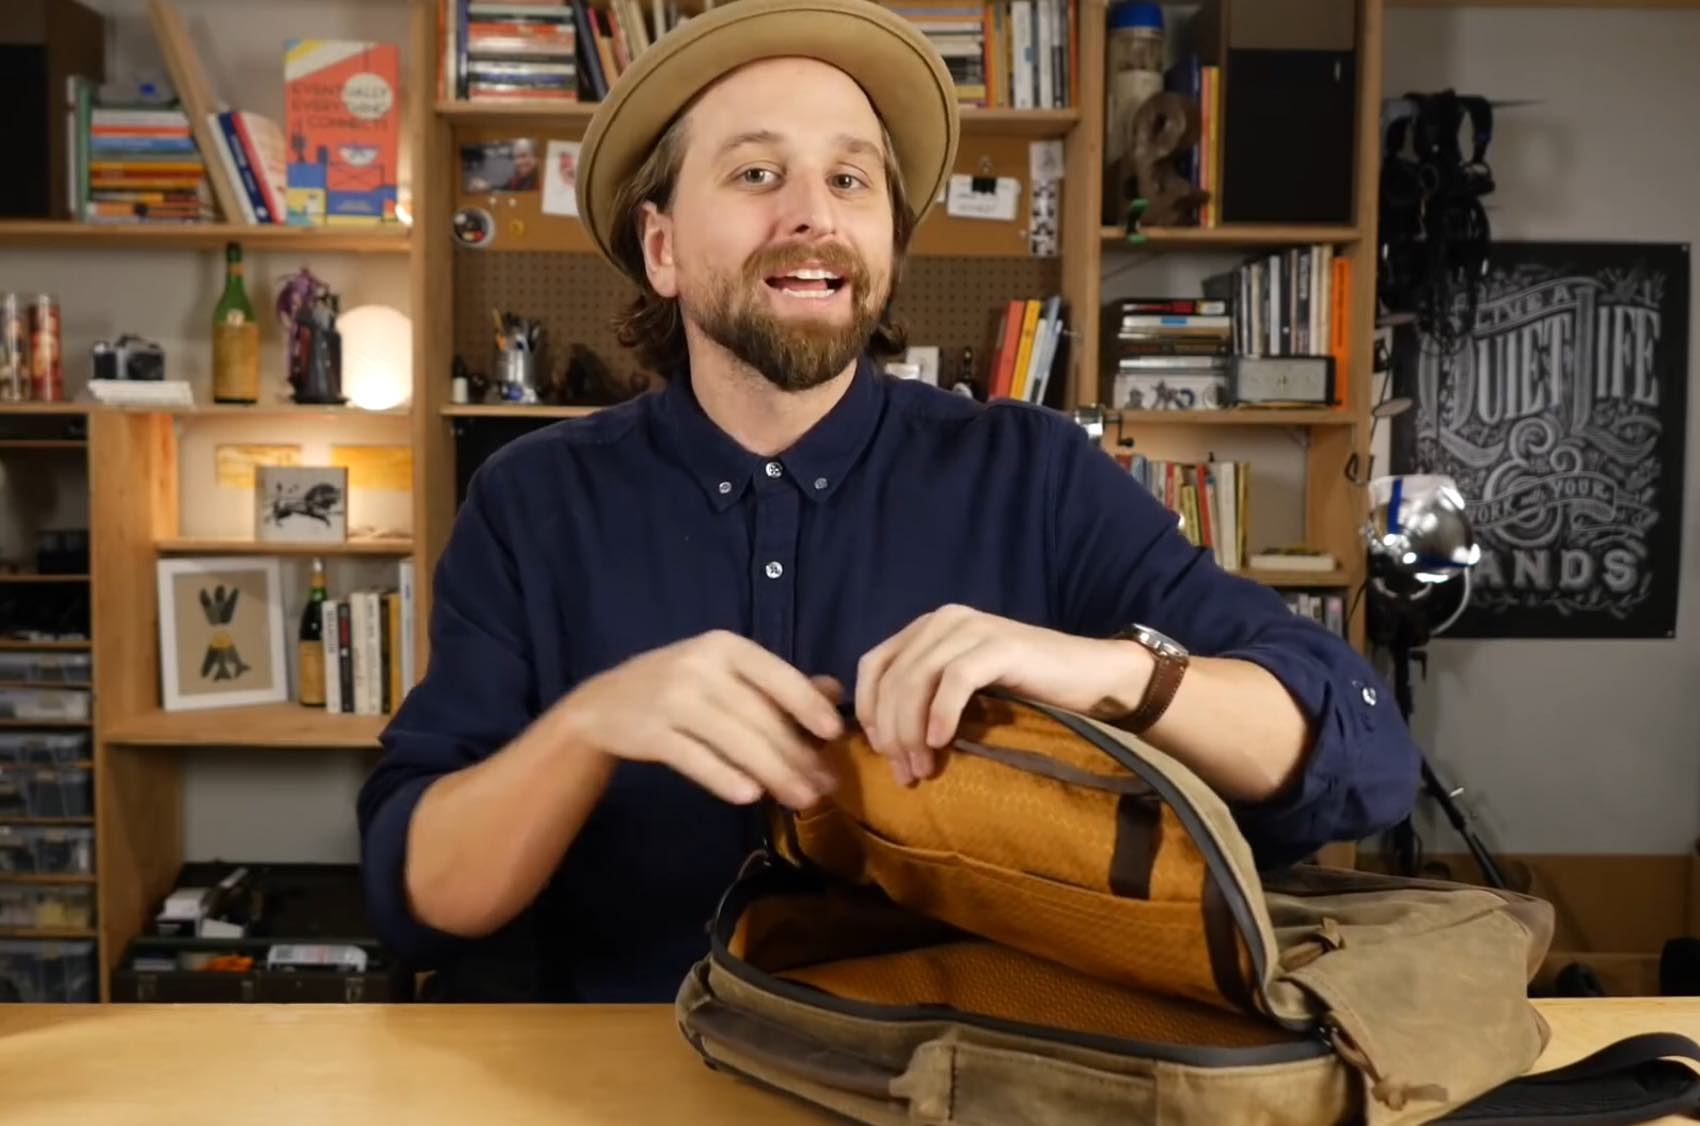 As Chase Reeves says in his video review, it's a little Indiana Jones on the outside and Louis Vuitton on the inside.